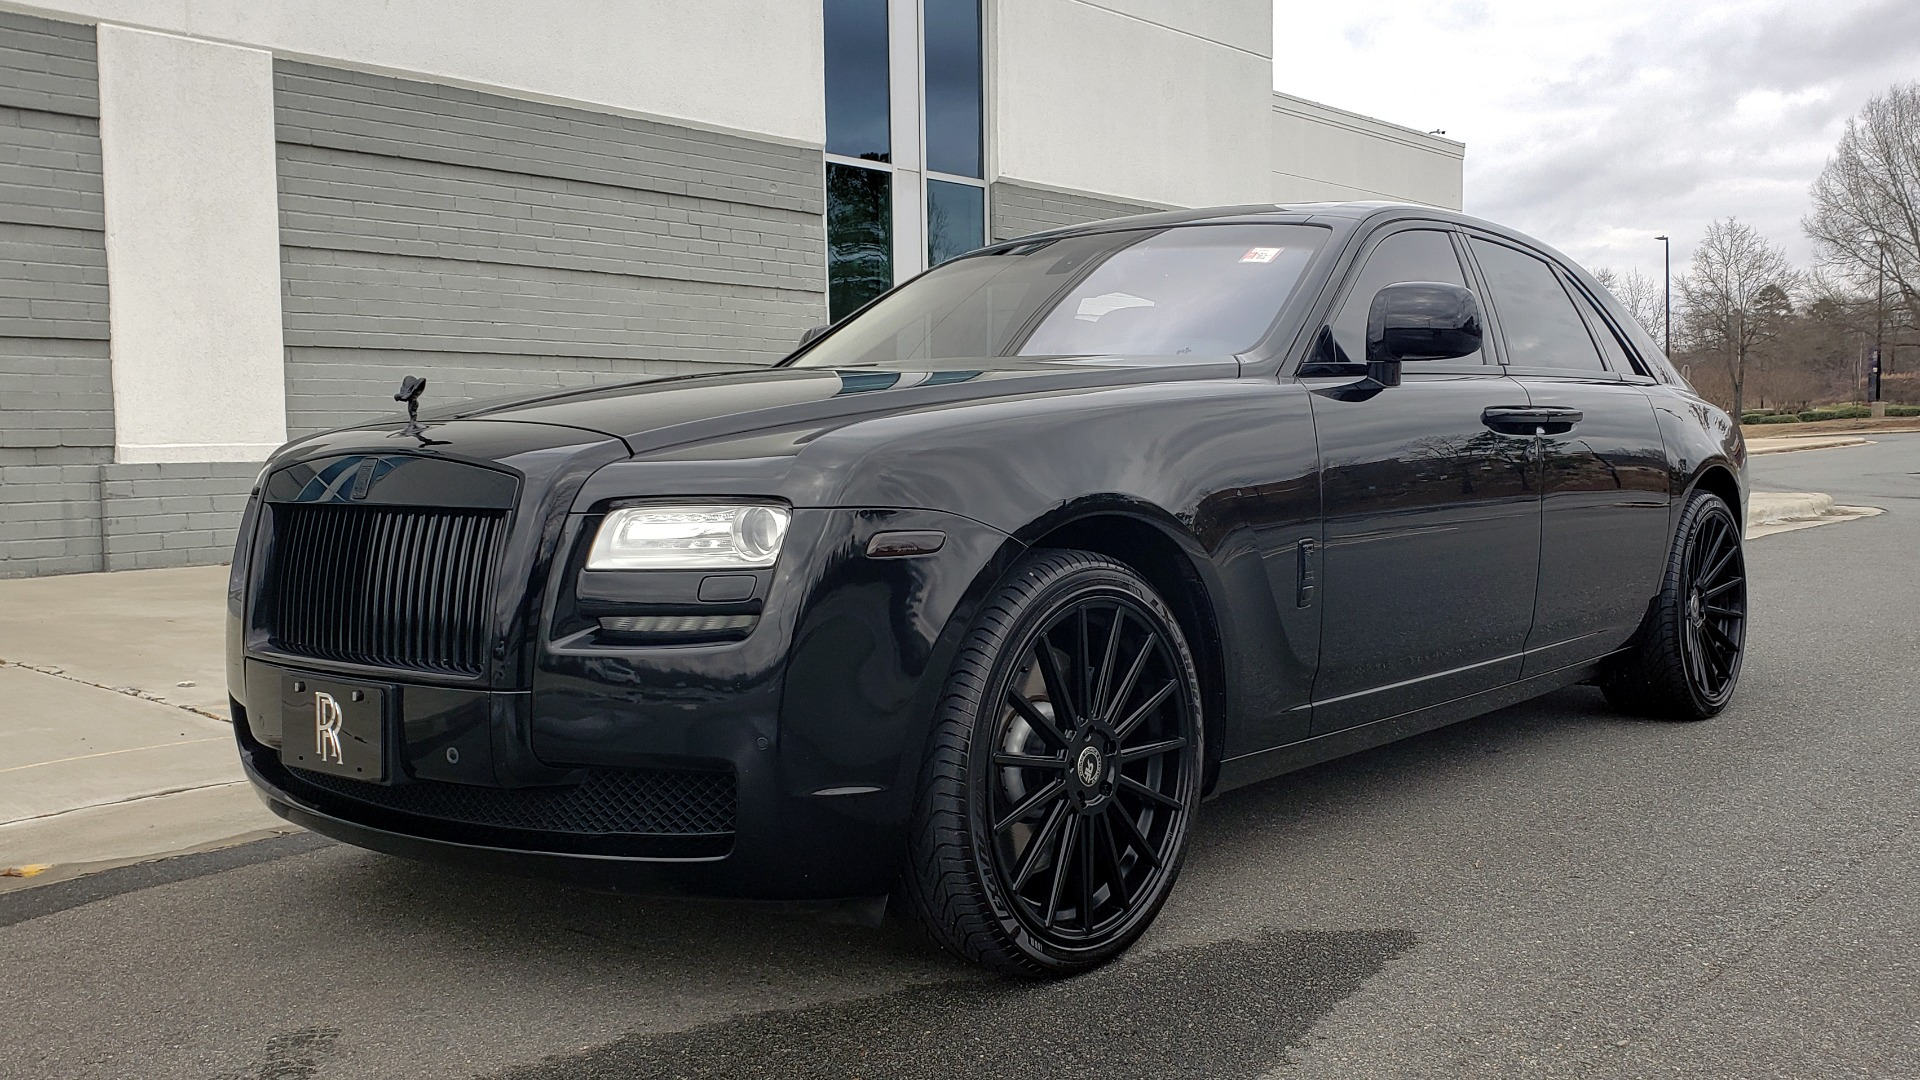 Used 2010 Rolls-Royce GHOST 6.6L TURBO V12 (563HP) / NAV / SUNROOF / SUICIDE DOORS for sale $89,000 at Formula Imports in Charlotte NC 28227 3